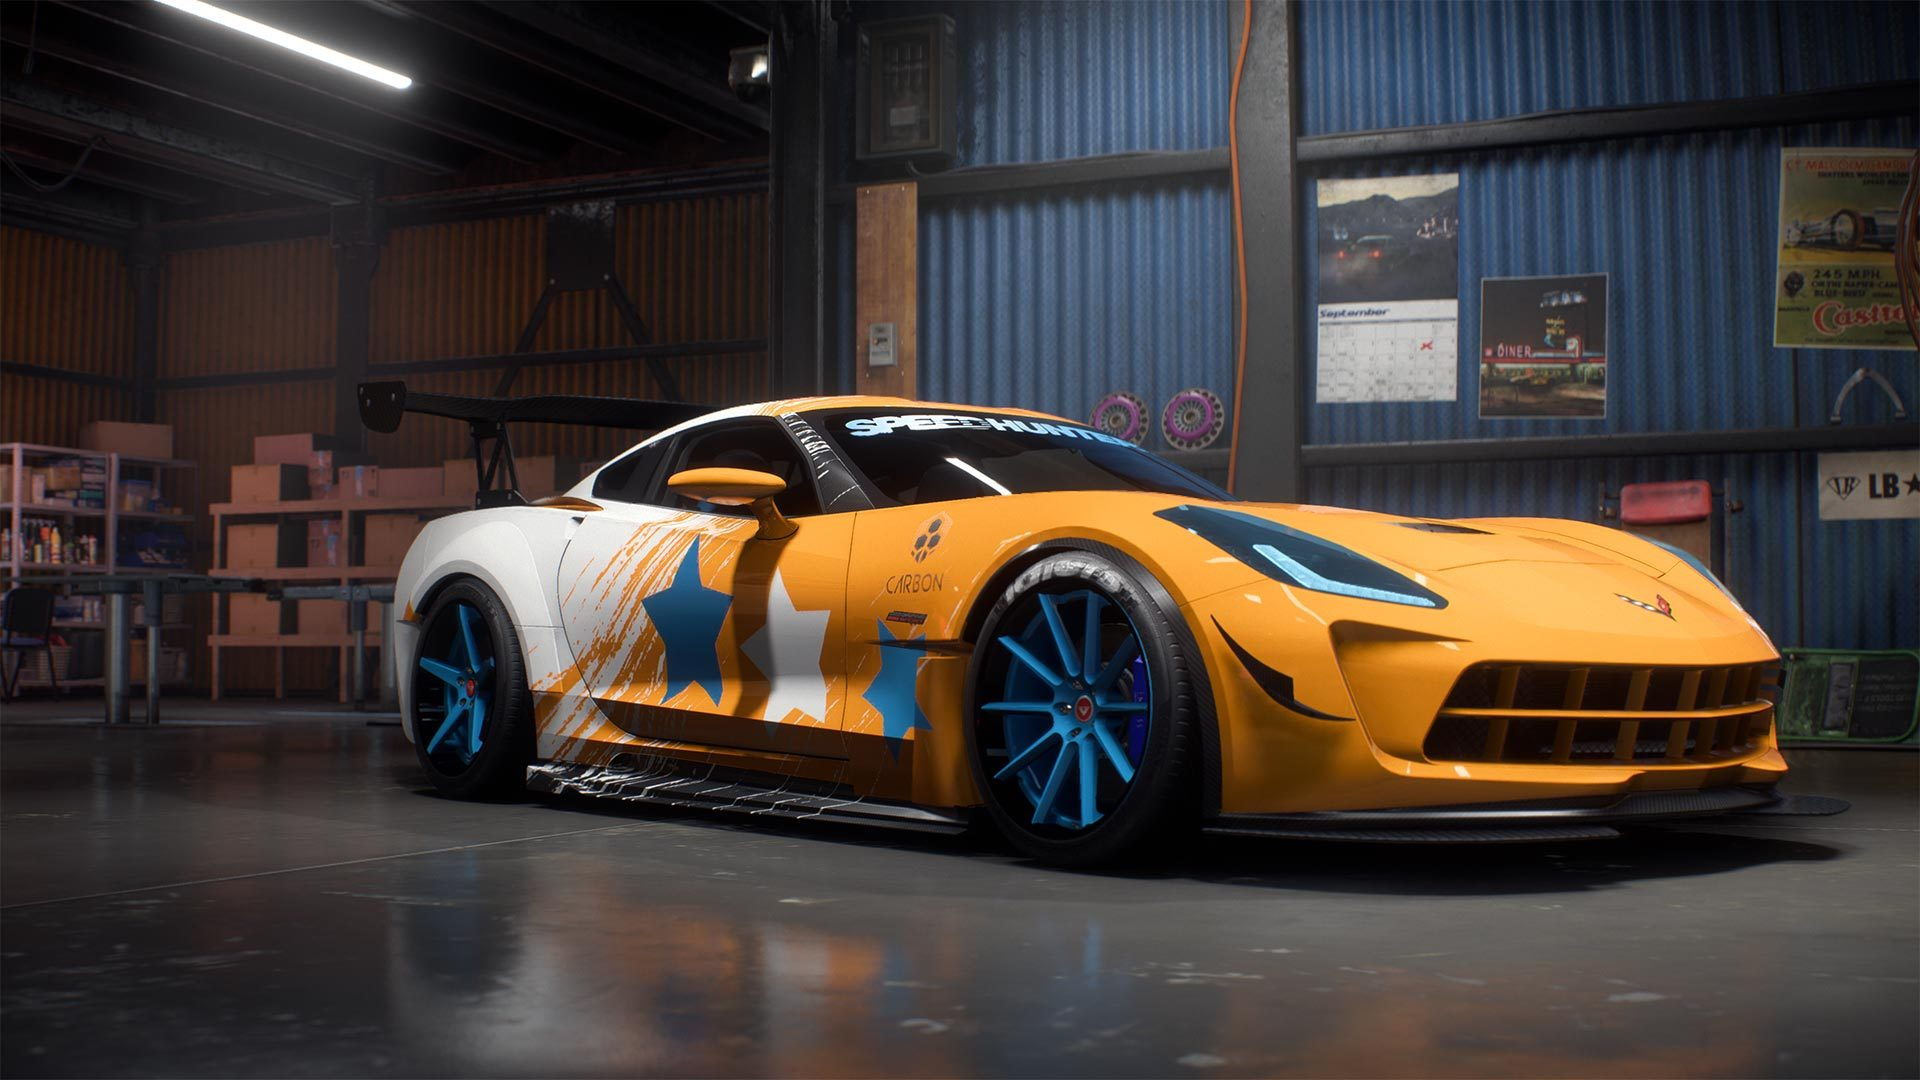 Setup Der Woche Need For Speed Payback Offizielle Ea Website